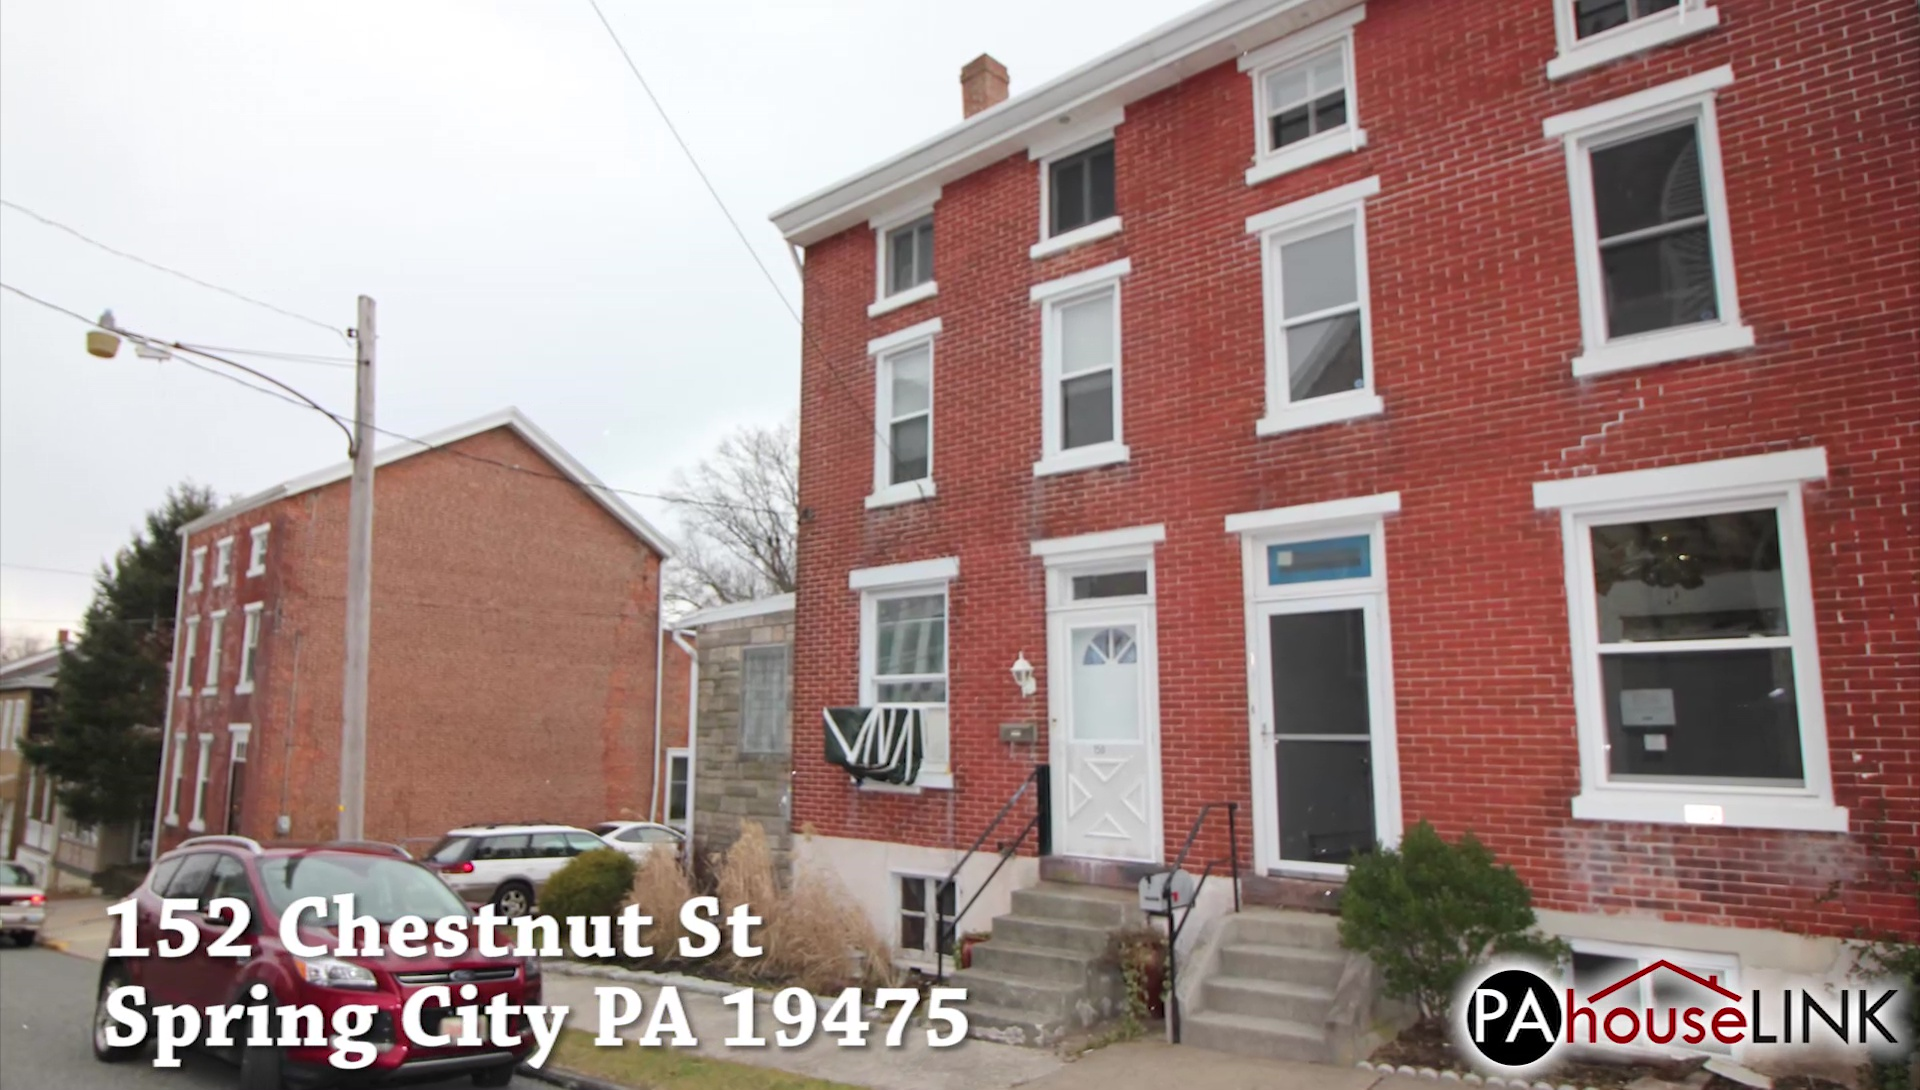 152 Chestnut St Spring City PA 19475 | Coming Soon Foreclosure Properties Spring City PA 19475